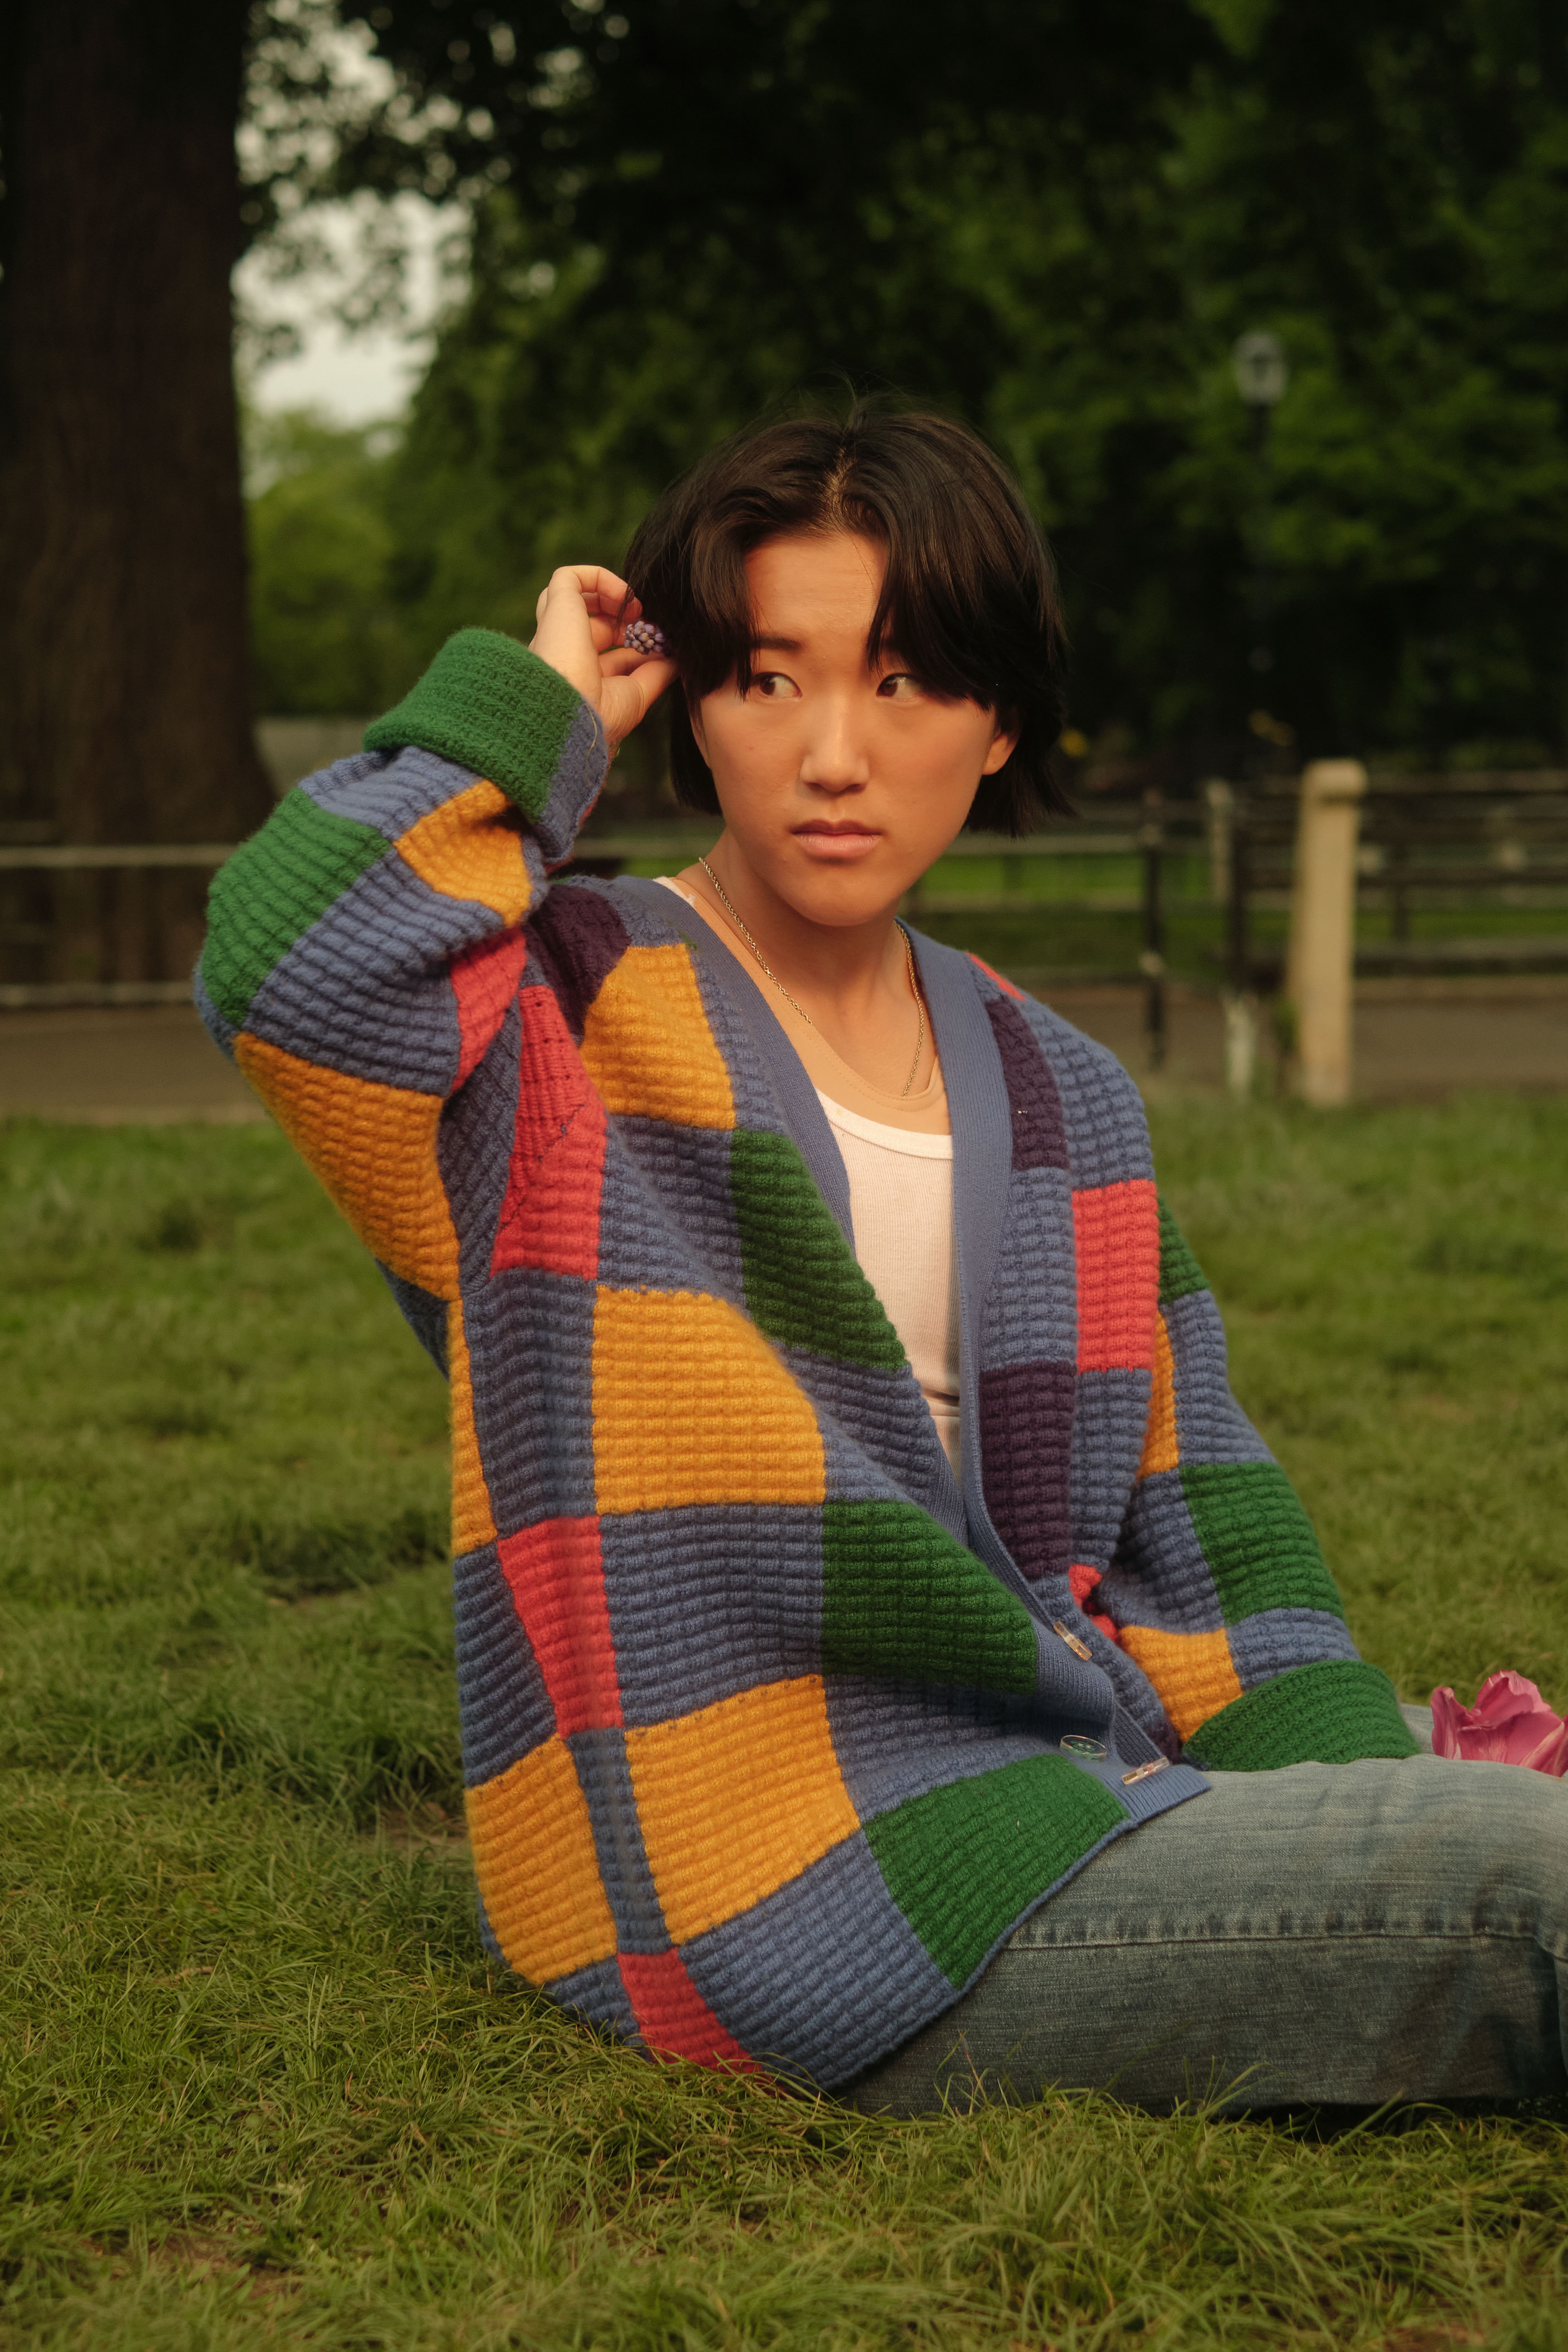 A non-binary trans man sitting on grass, holding a flower(1)